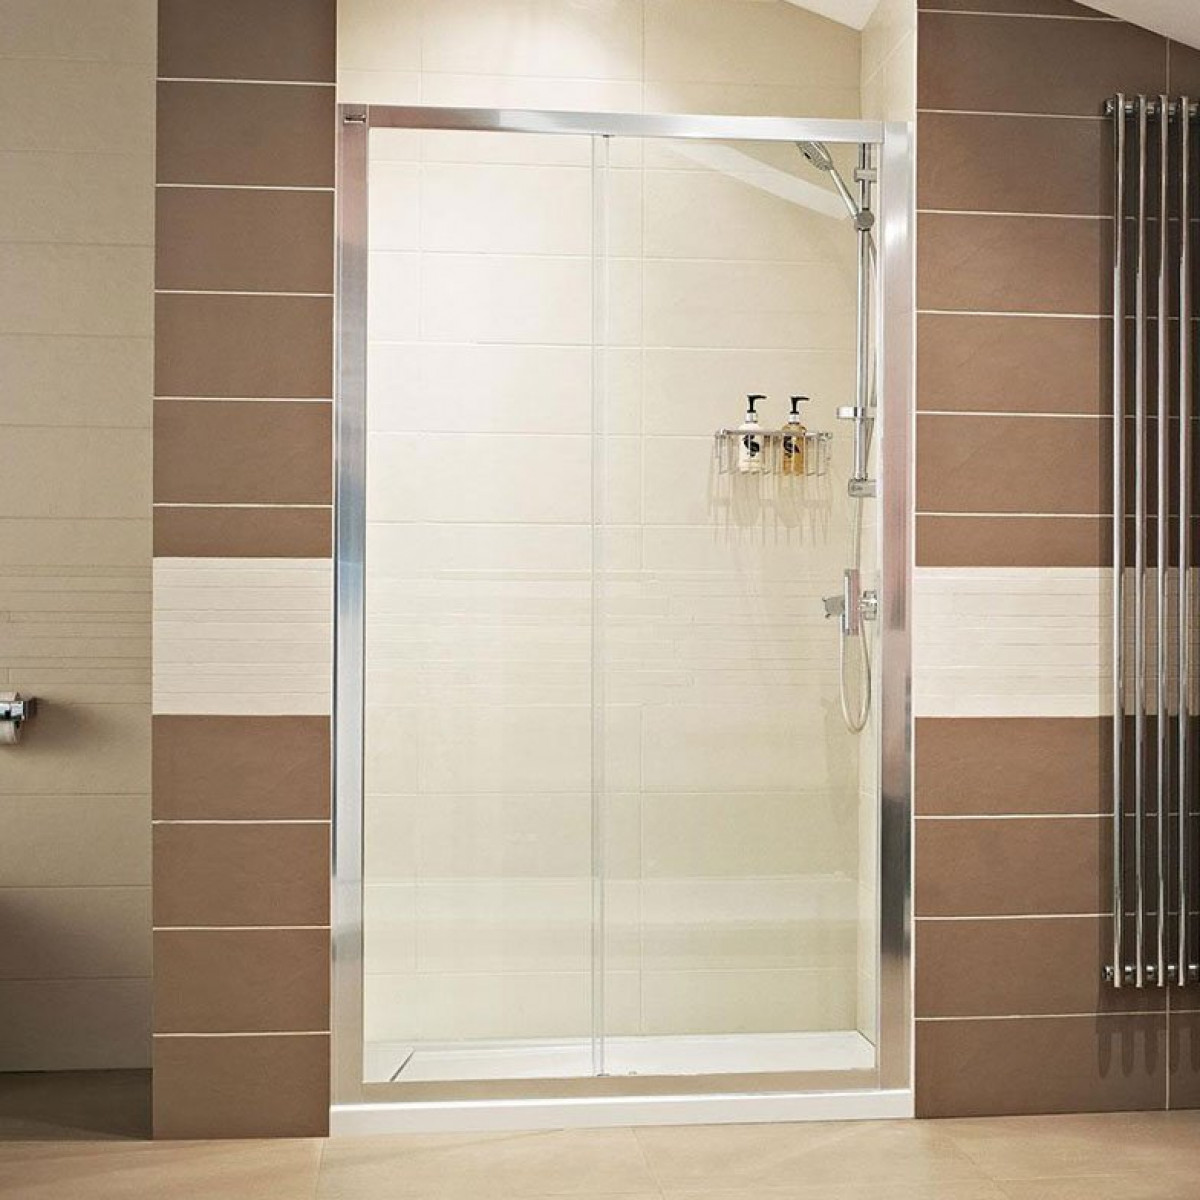 Roman lumin8 1000mm sliding shower door for 1000mm shower door